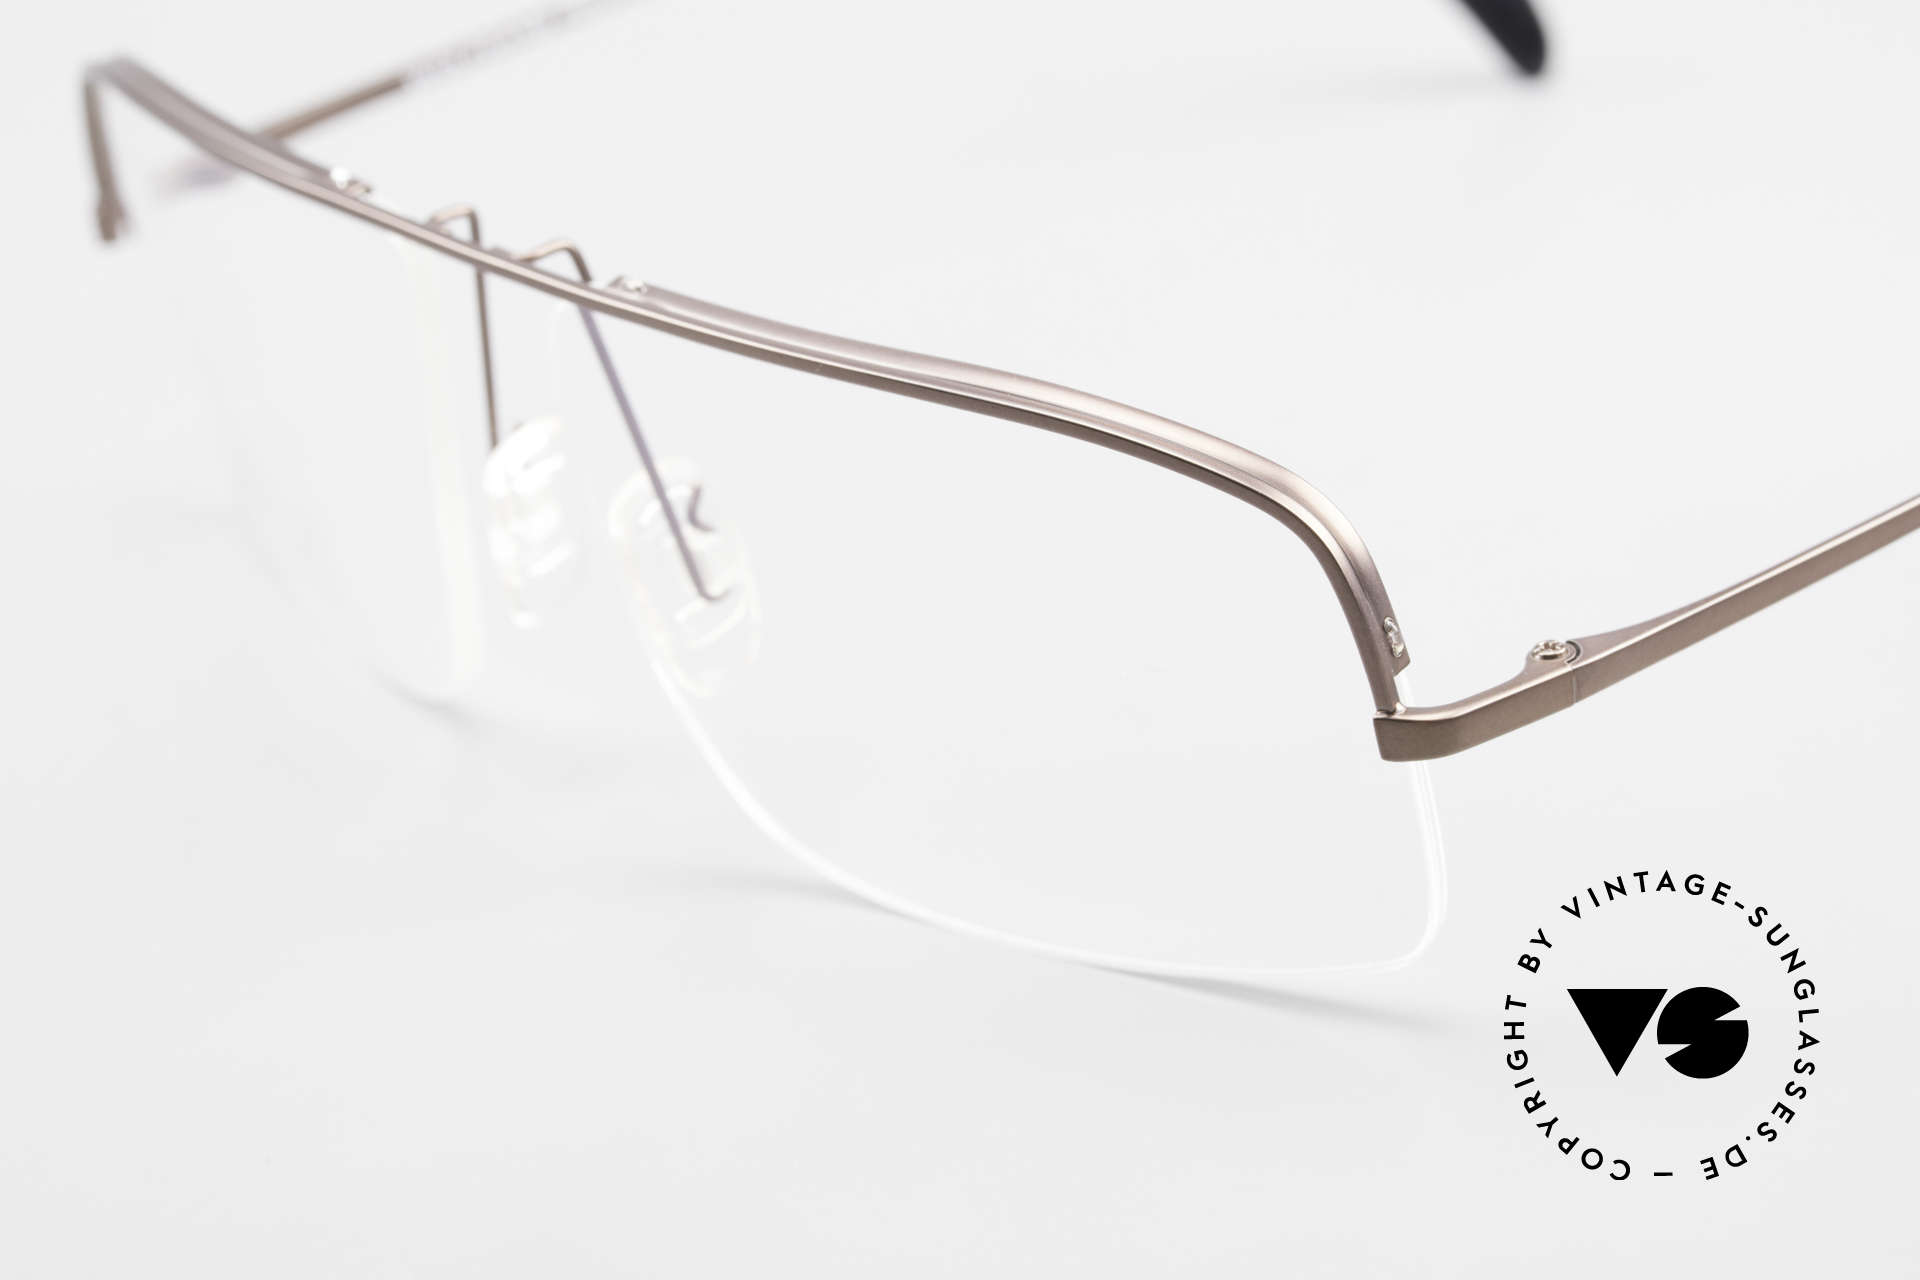 Wolfgang Proksch WP0103 New Tear Drop Titanium Frame, model of the 1st W.P. serie, produced by KANEKO, Made for Men